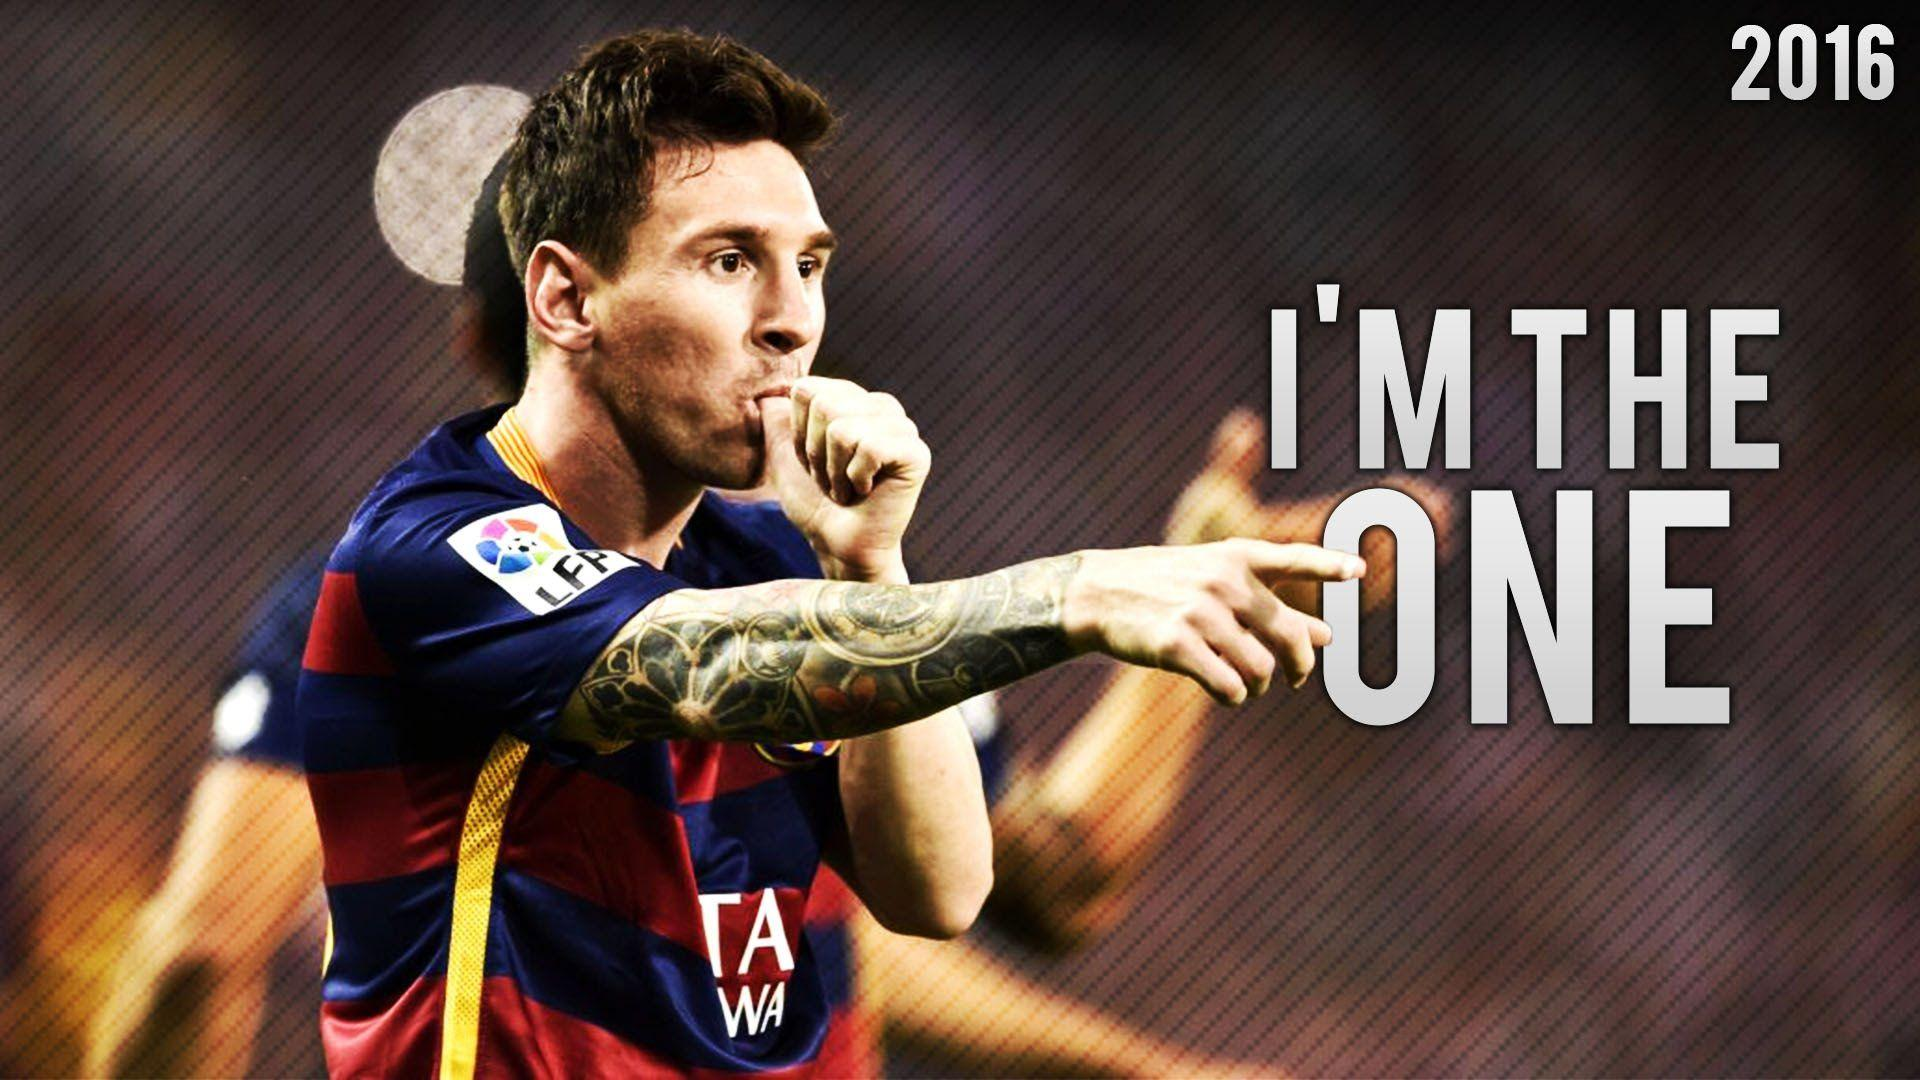 Lionel Messi Wallpapers HD 2016 1920x1080